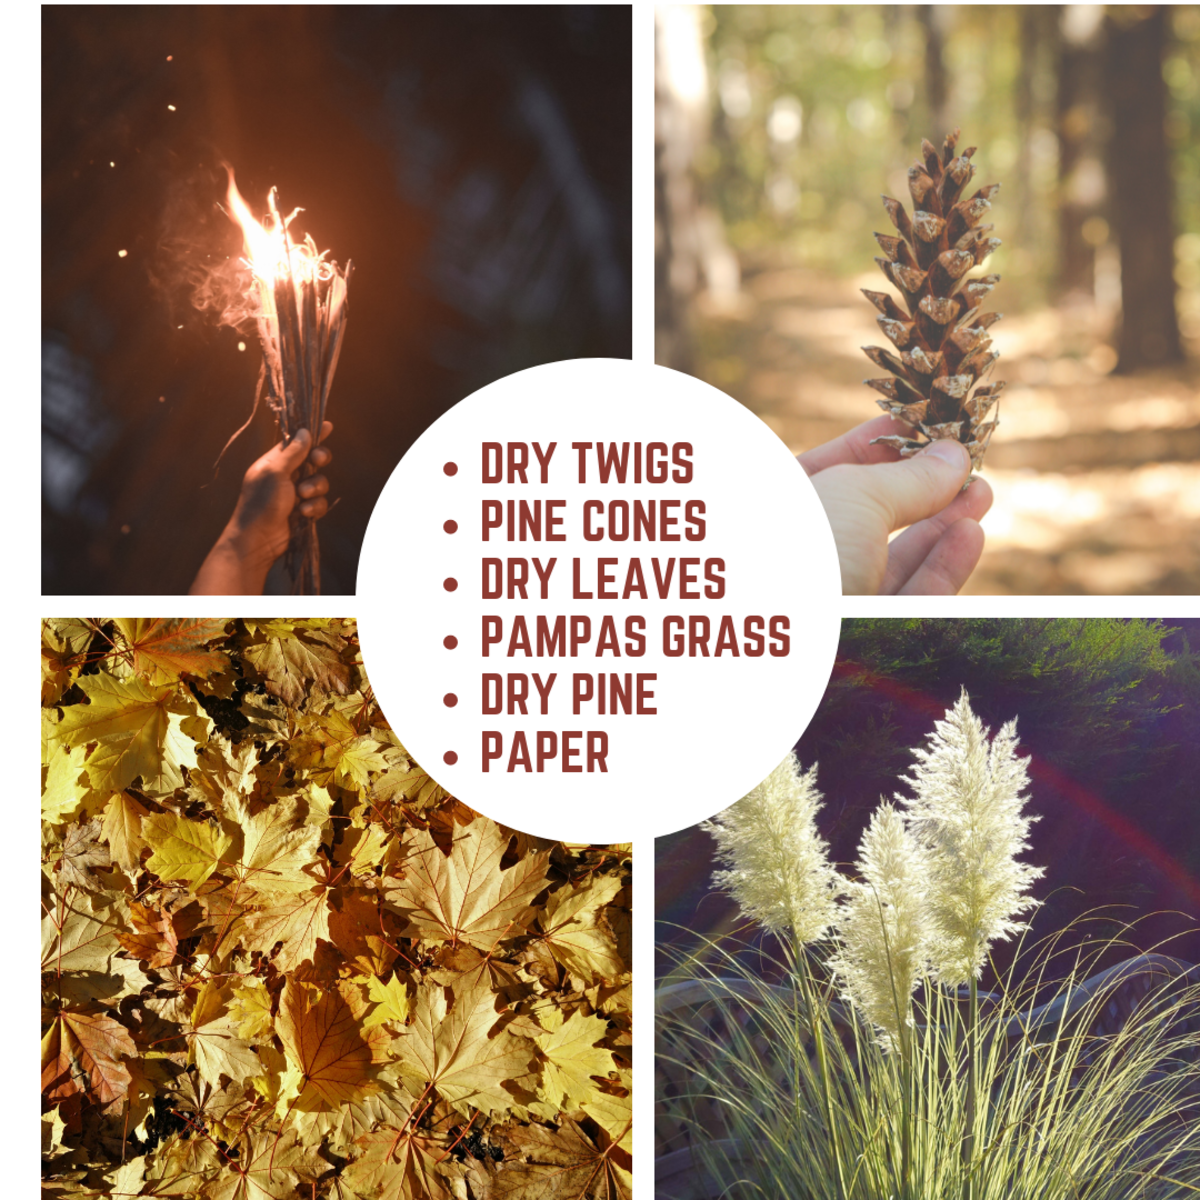 Twigs, pinecones, dry leaves, dry pine, and pampas grass make for good kindling. Pampas grass is extremely flammable and is considered invasive.